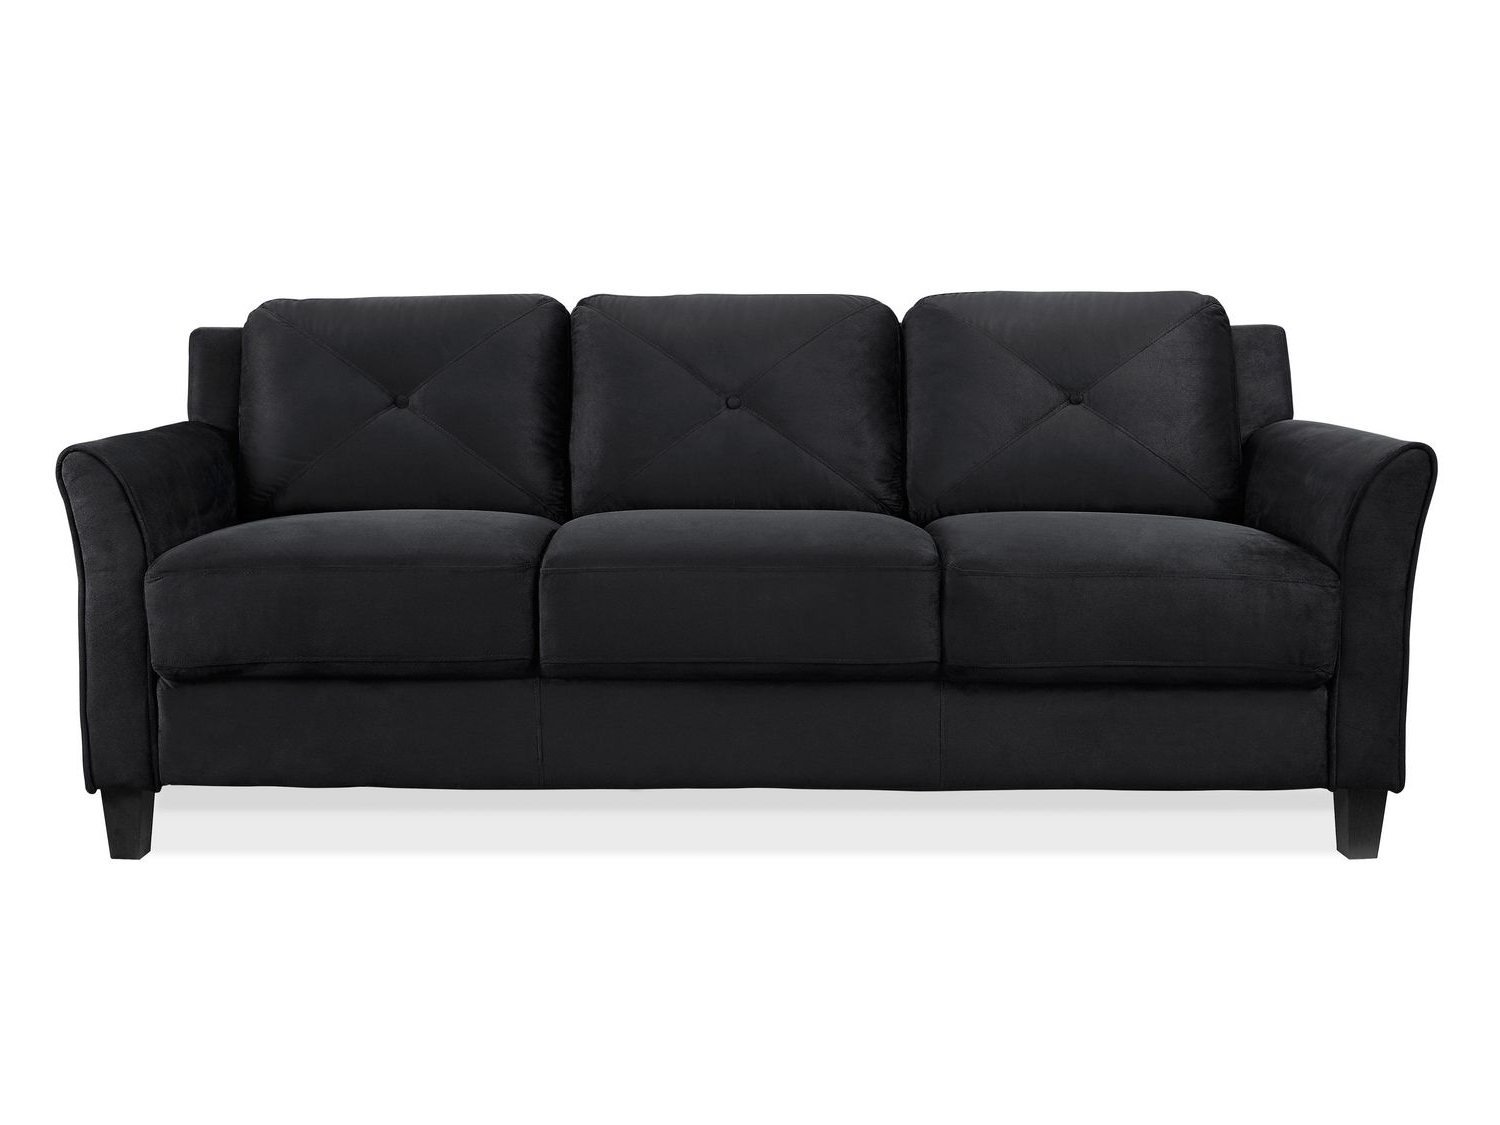 Sectional Sofas At Walmart With 2017 Sofa : Cheap Sectional Sofas Walmart Walmart Tablet Samsung Camas (View 12 of 15)